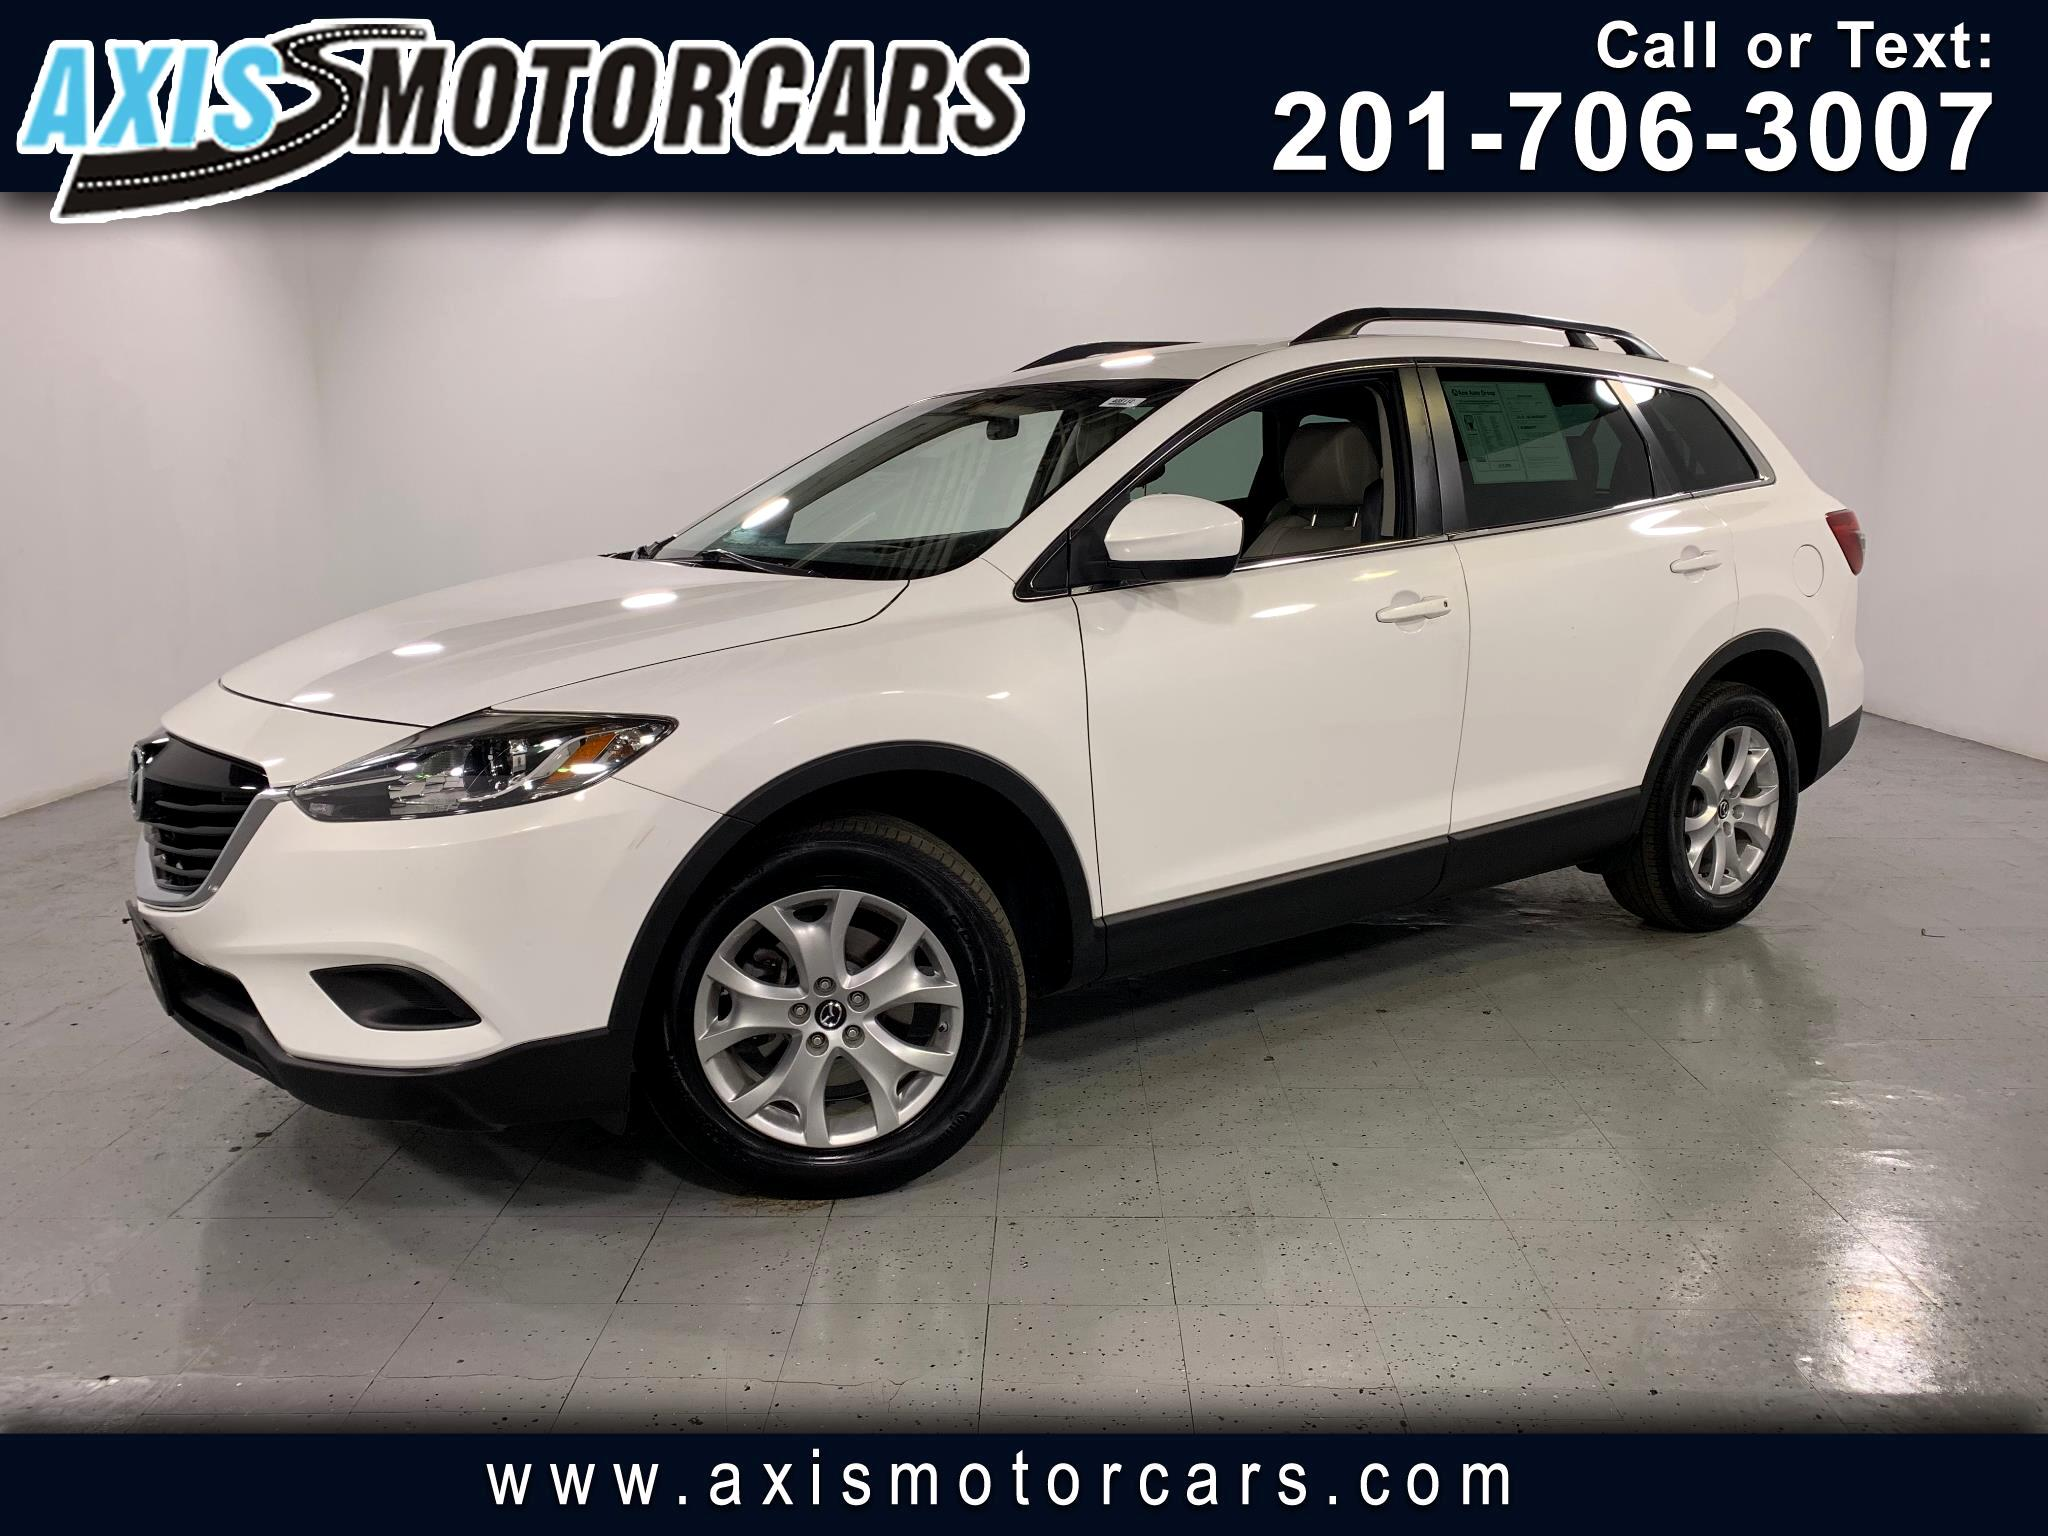 2013 Mazda CX-9 Touring w/Navigation Backup Camera